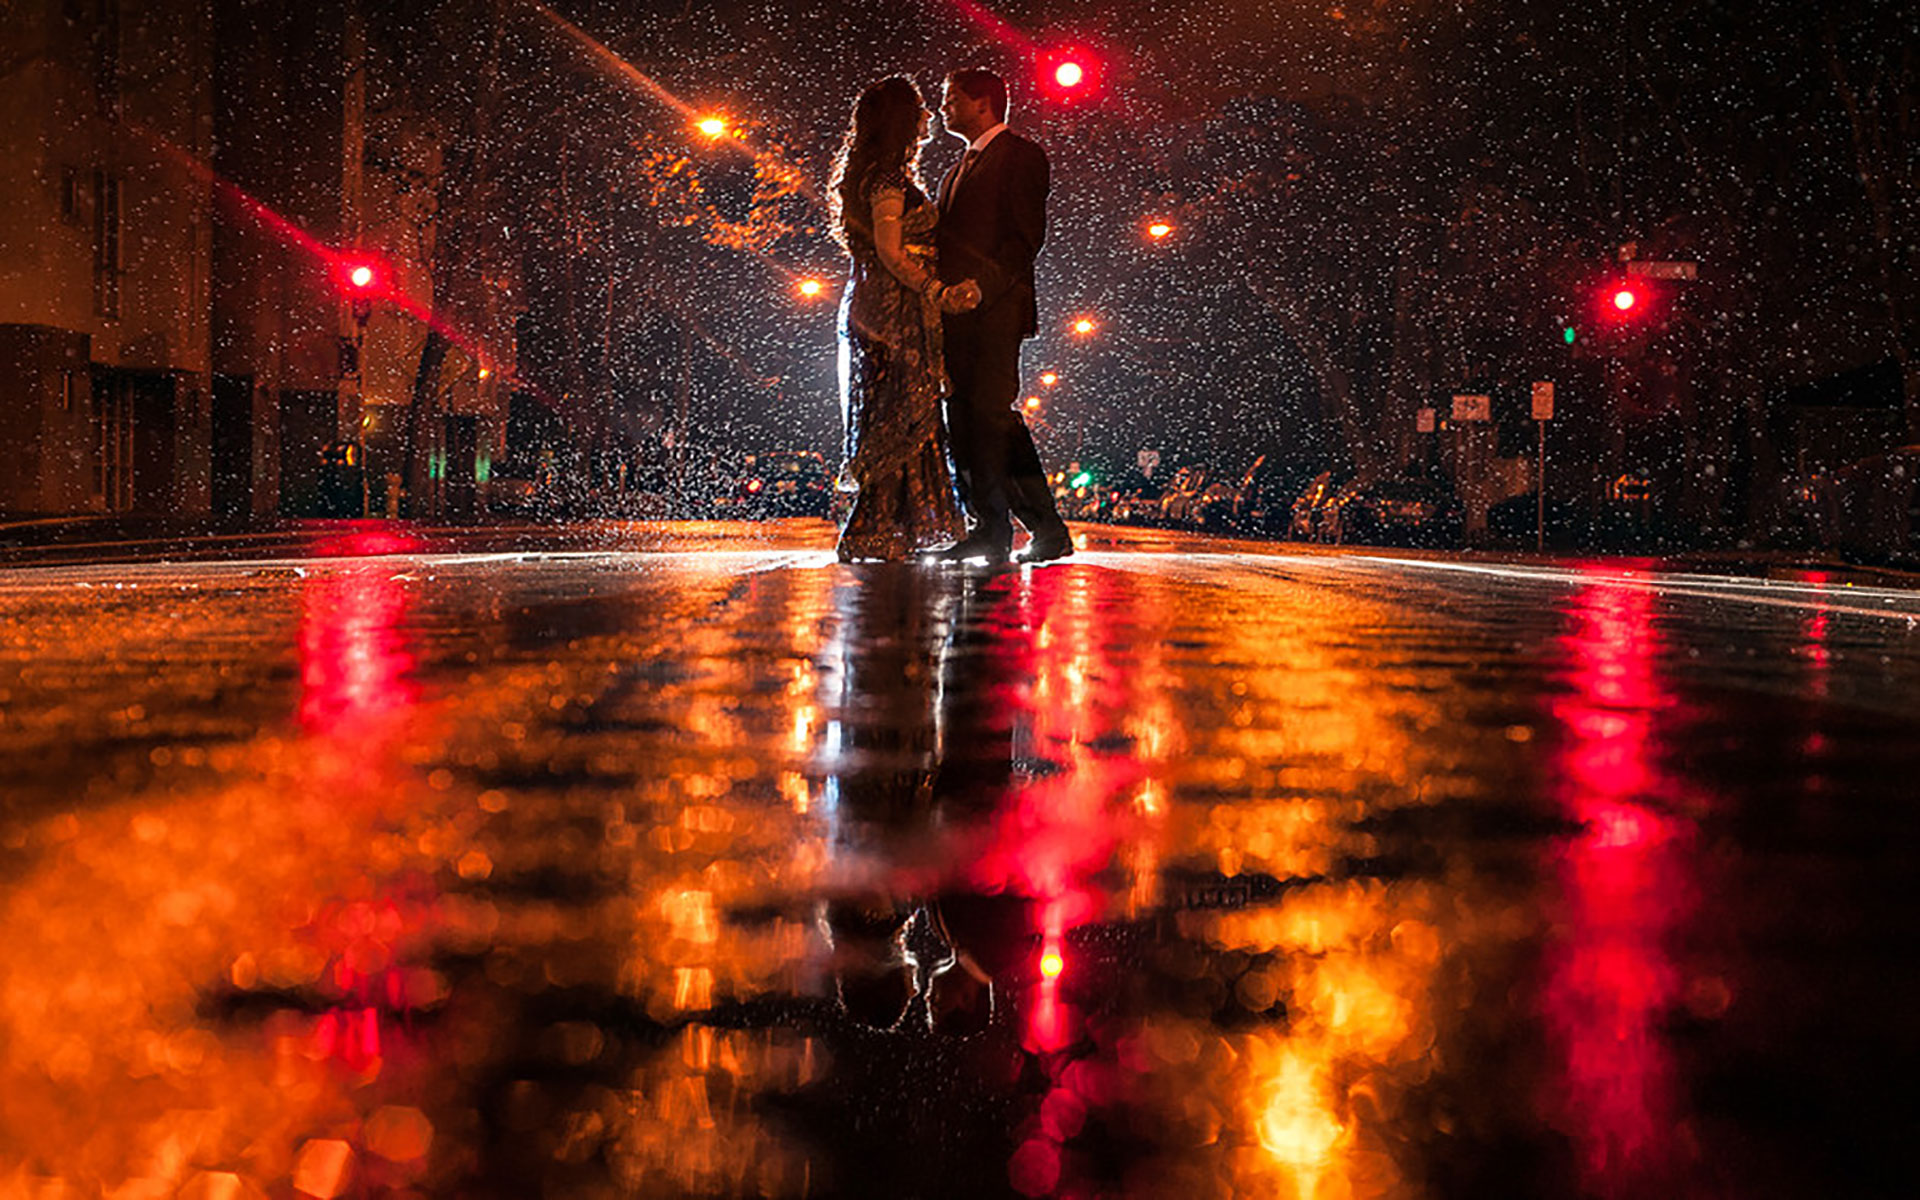 Love couple Night Wallpaper : 20+ Love couple s Romance in the Rain Wallpapers